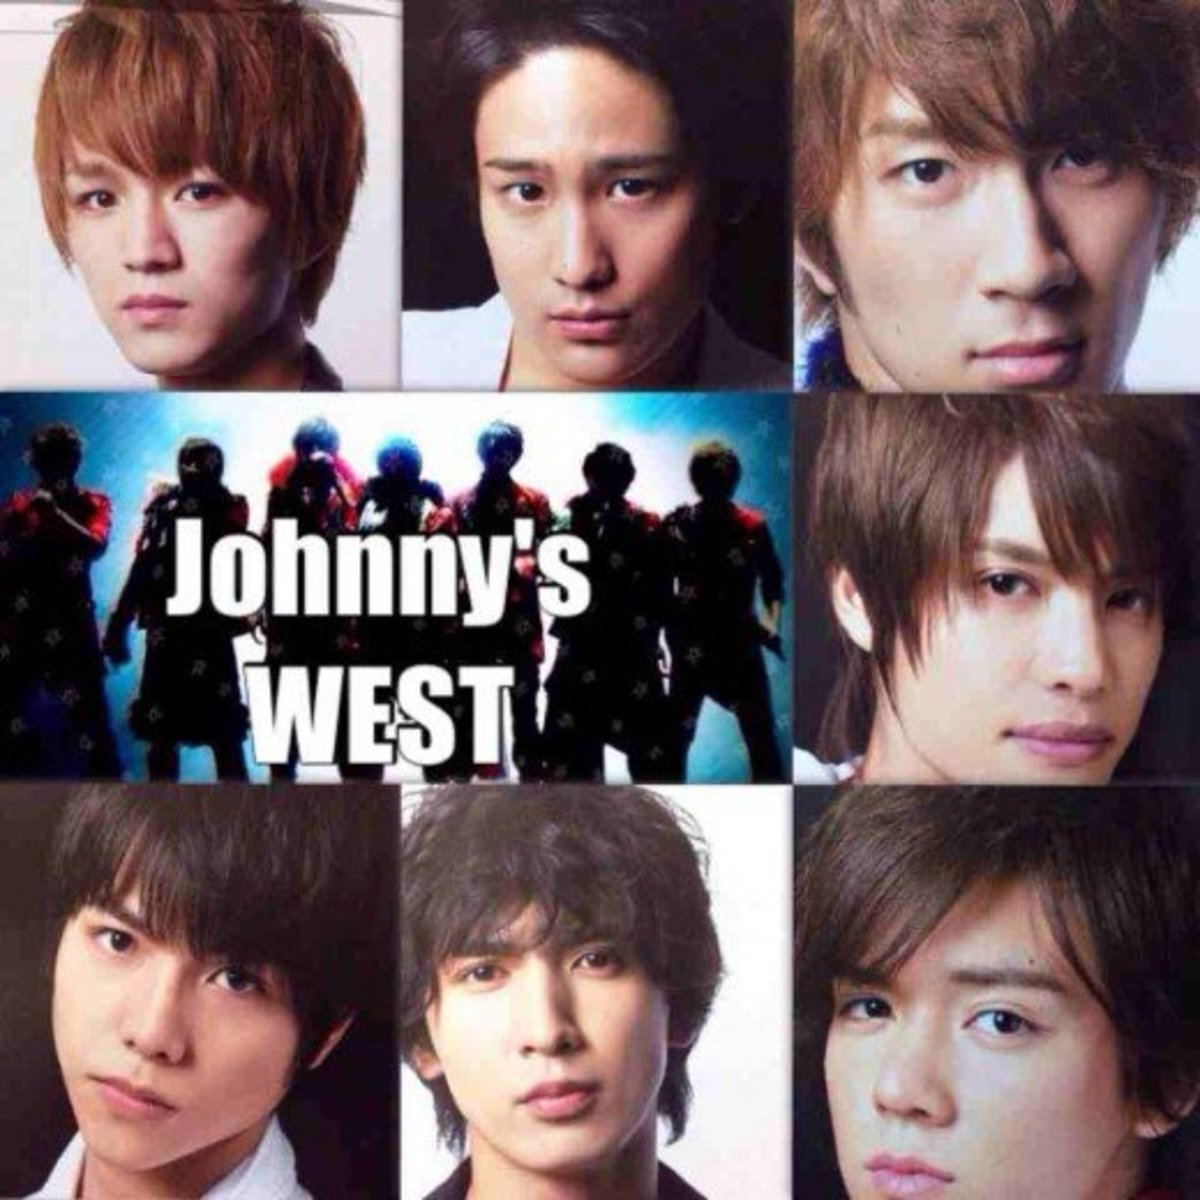 Johnny's West